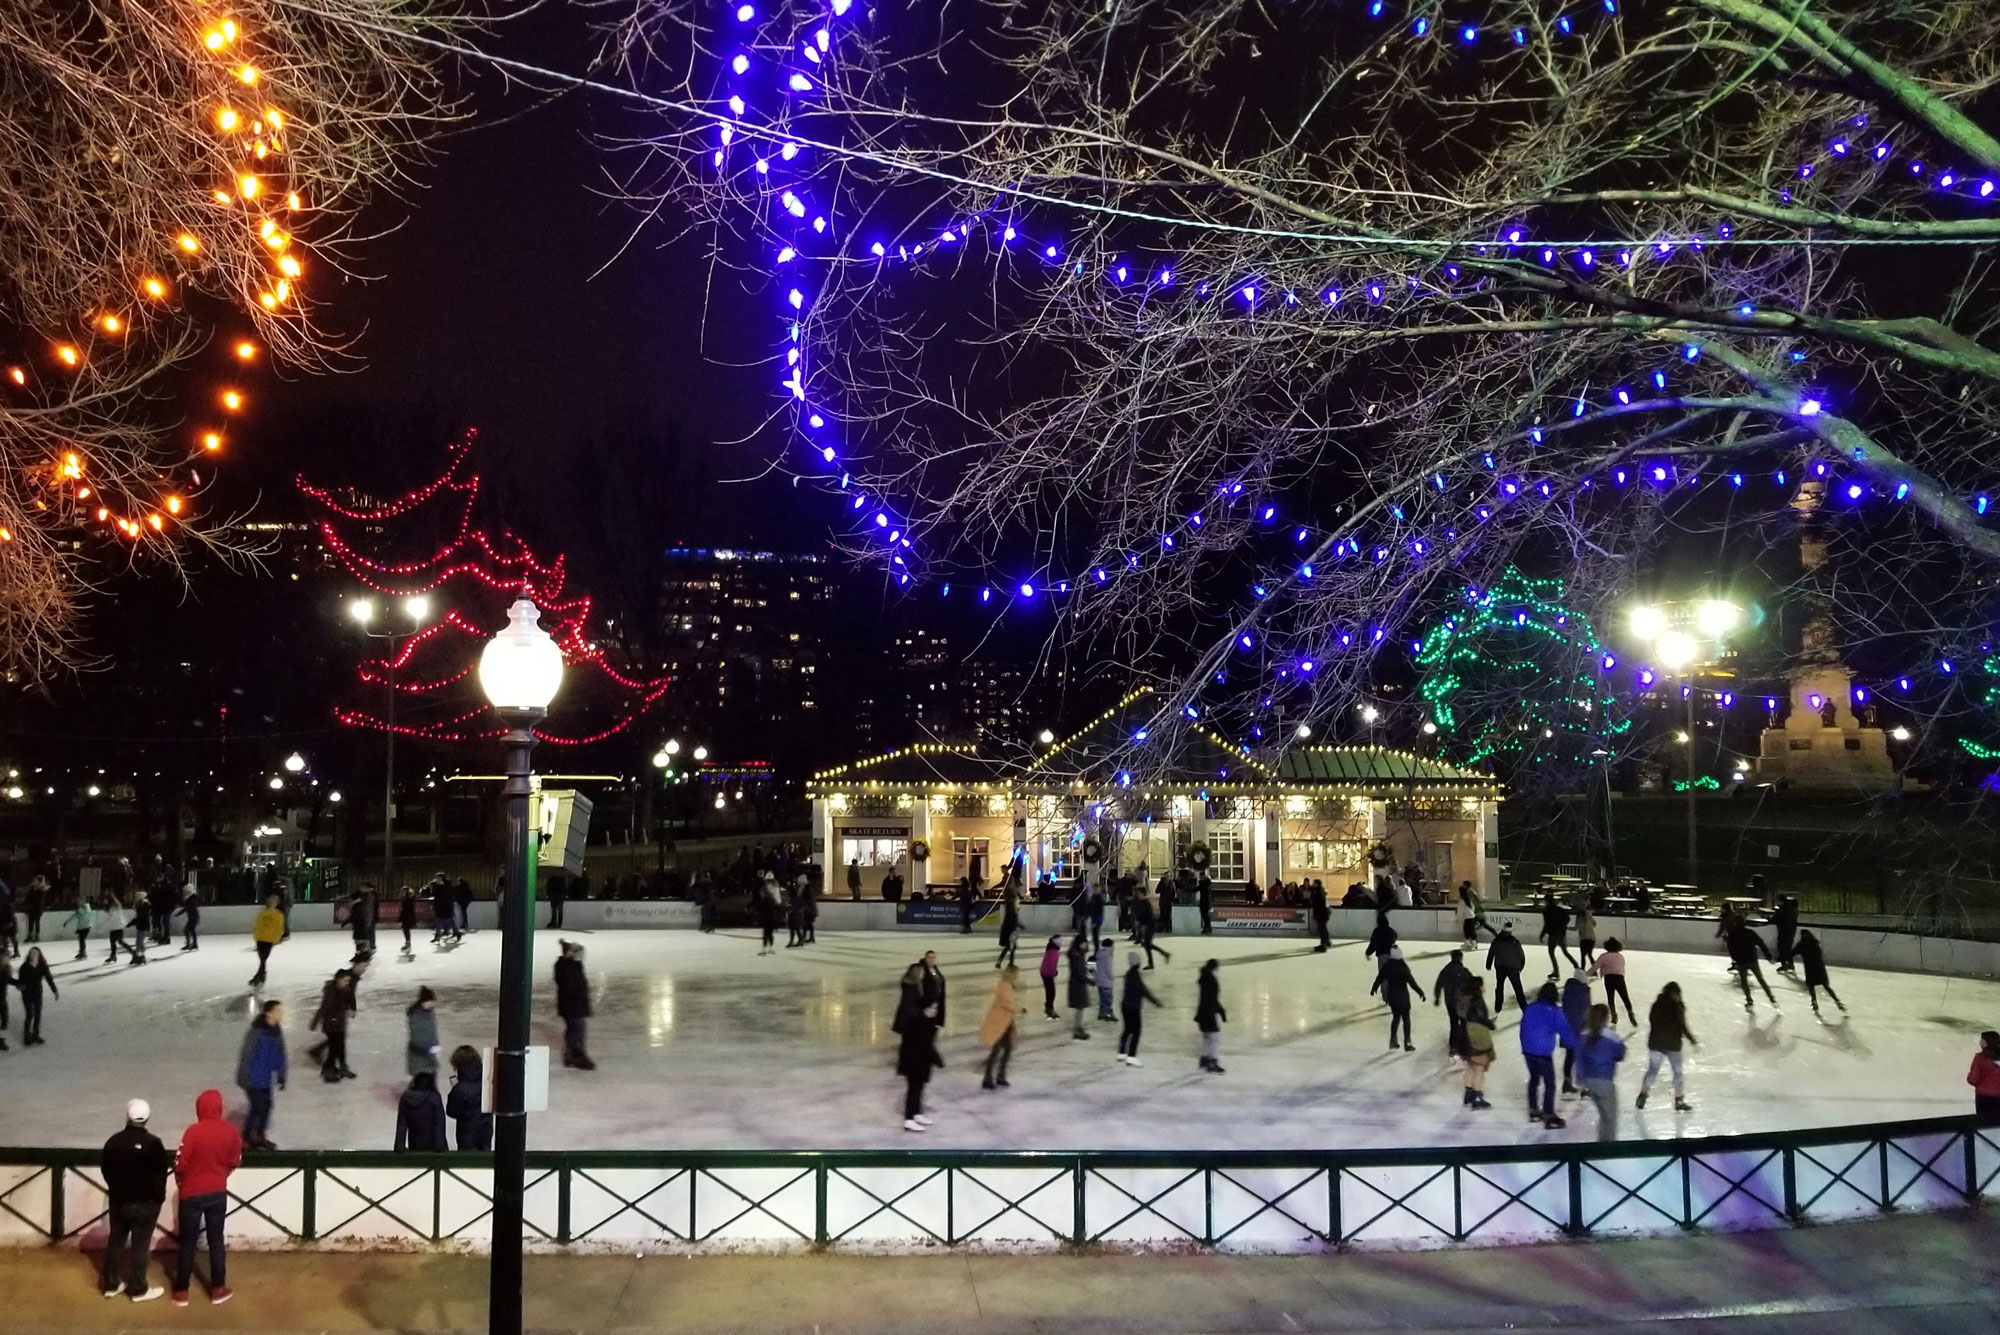 People skate on the Boston Frog Pond at Nighttime